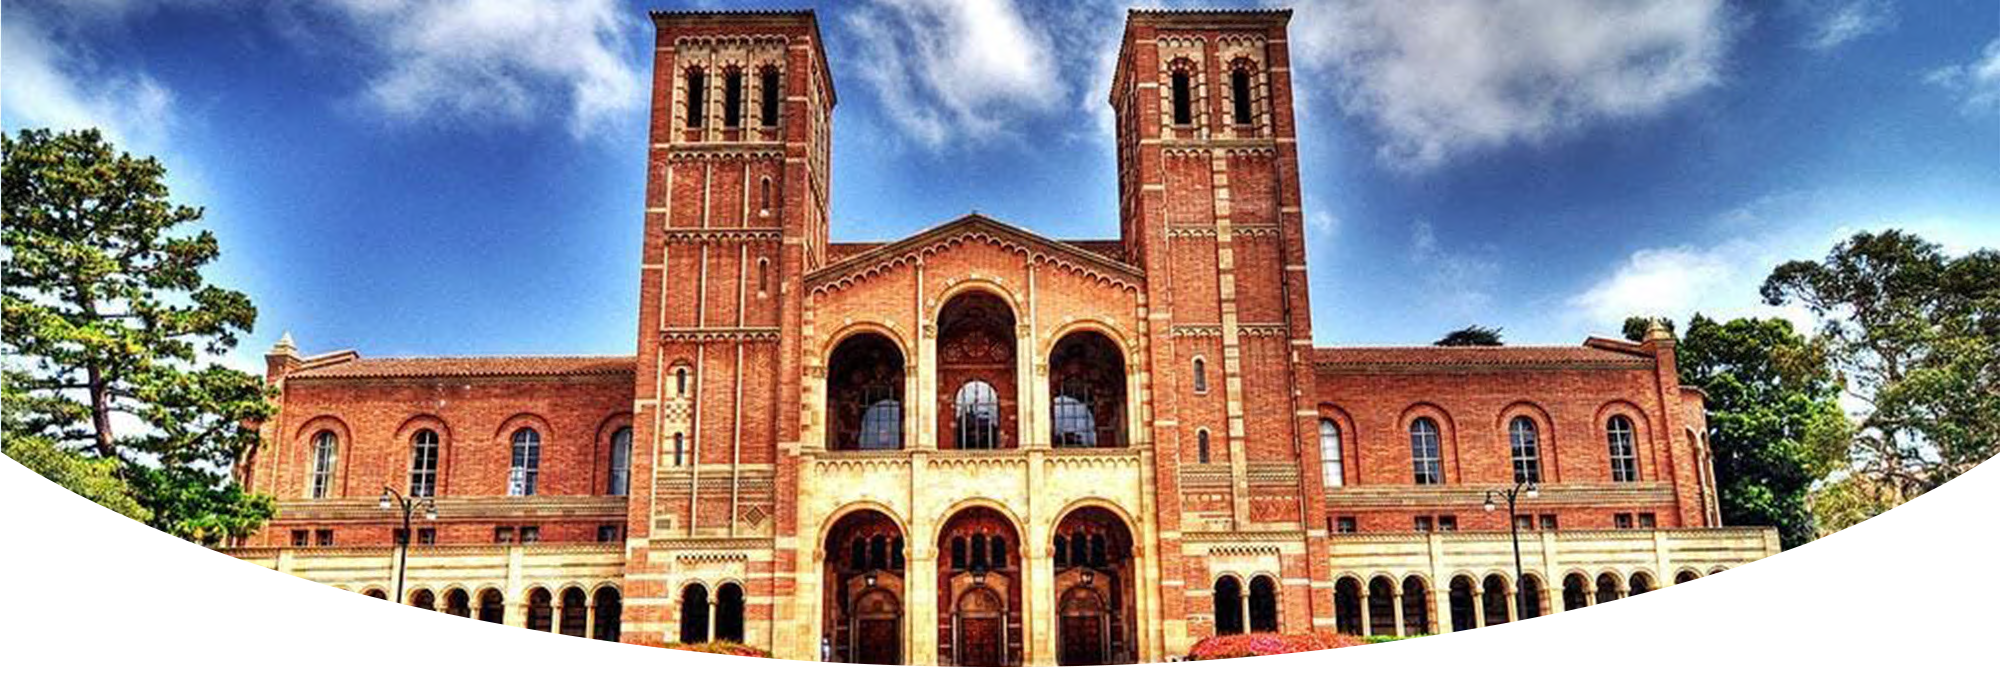 iDesign | News | UCLA Launches Online Masters